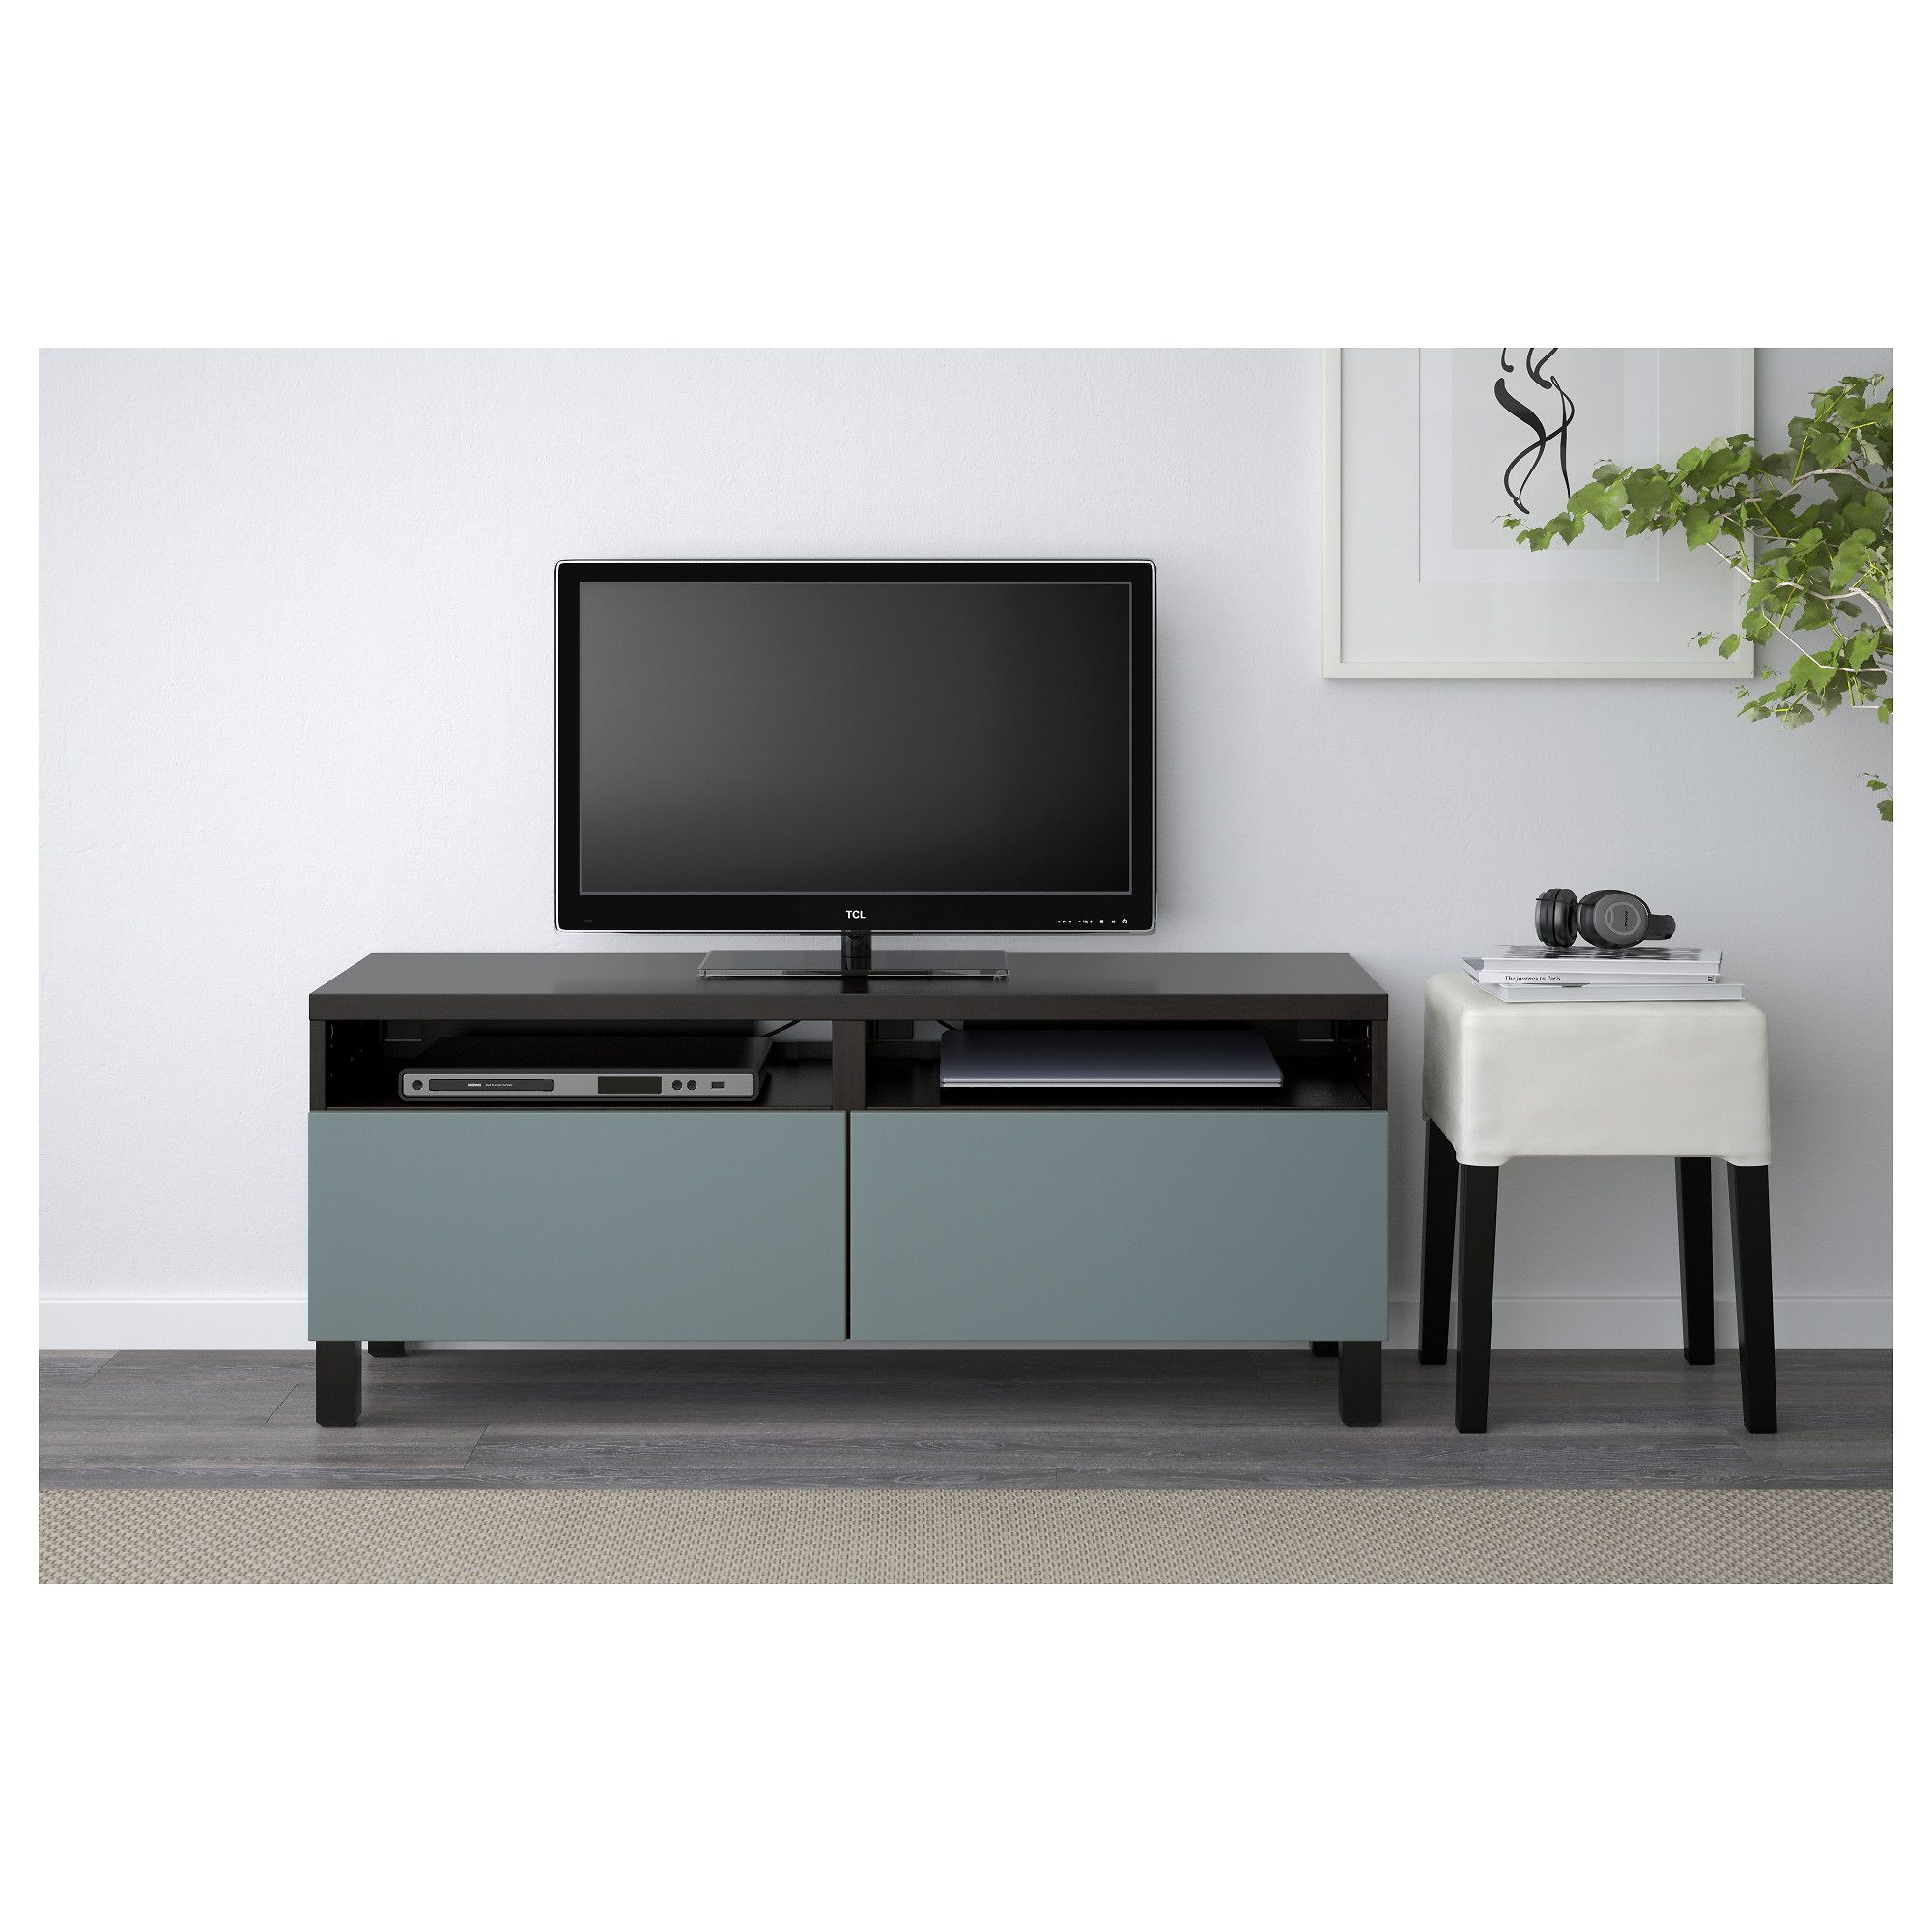 Ikea Bank Accessoires Ikea BestÅ Tv Unit With Drawers Black Brown Valviken